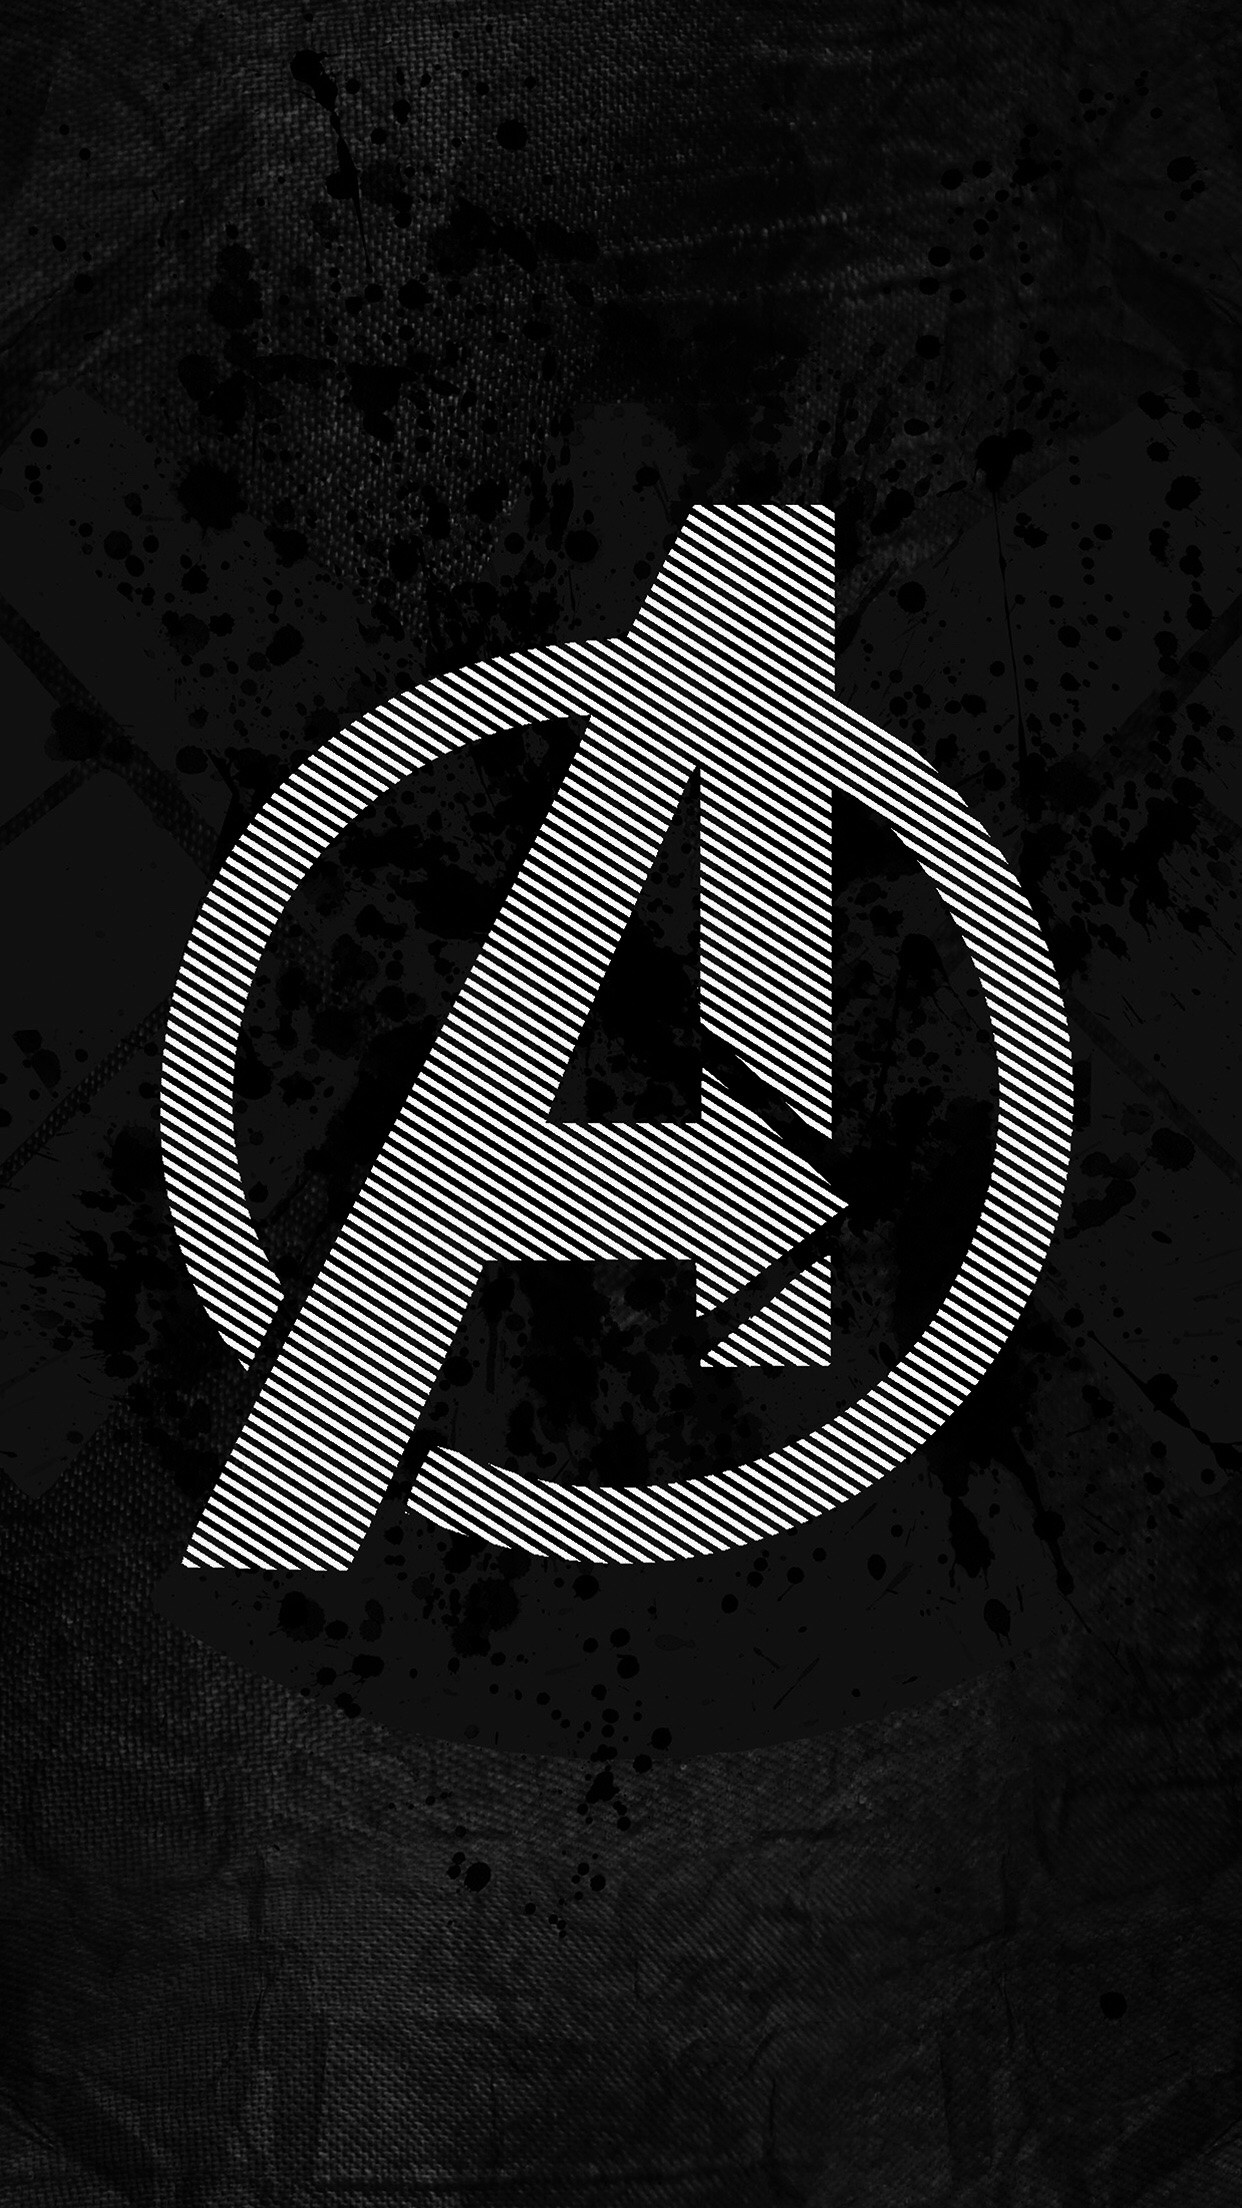 avengers iphone wallpaper (81+ images)